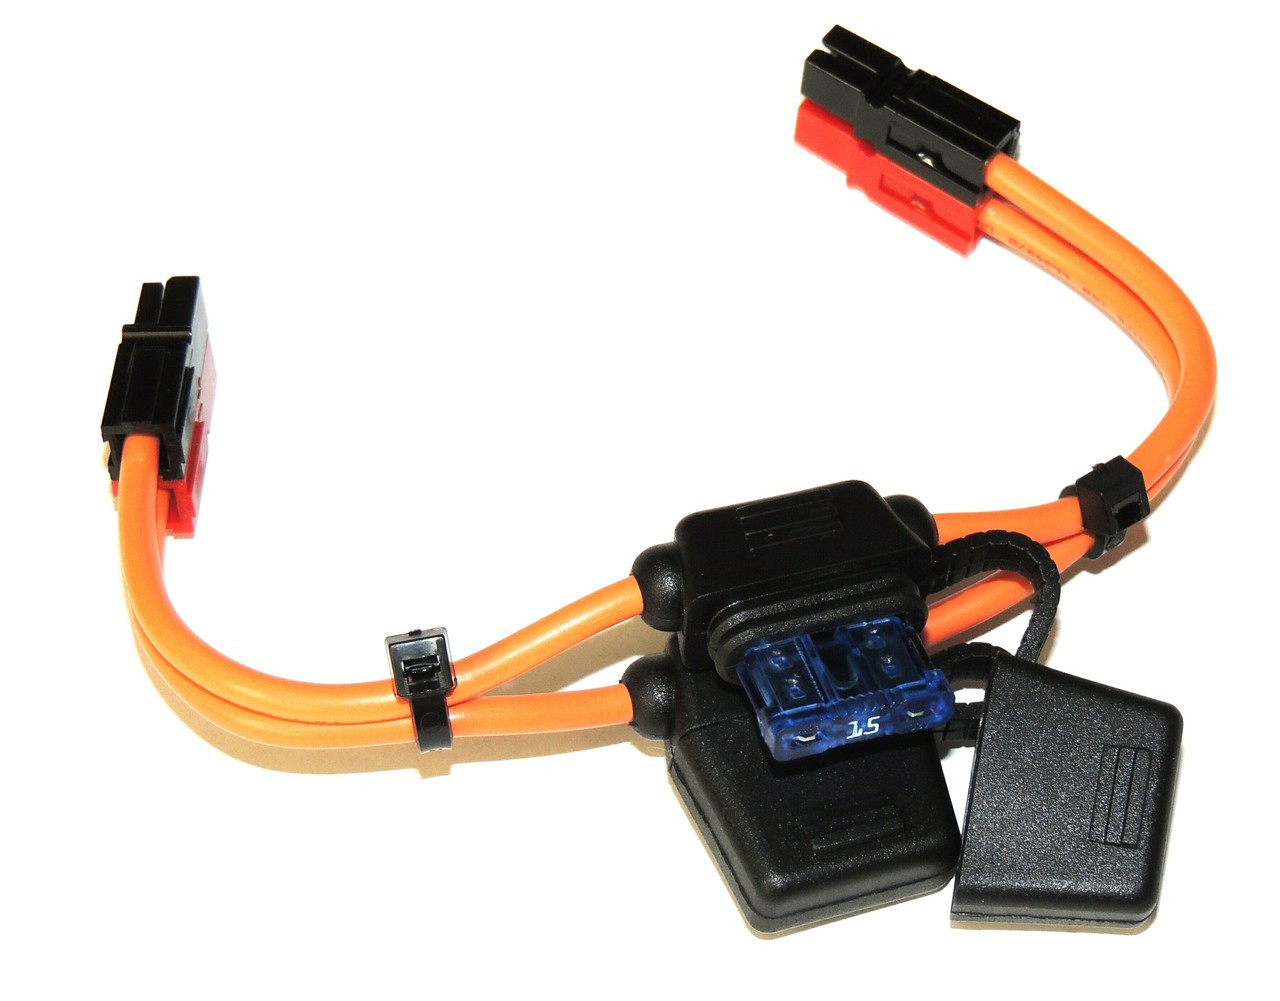 Power Cable, Powerpole to Powerpole with fuse holders and Choice of fuses in both sides,12 GA.